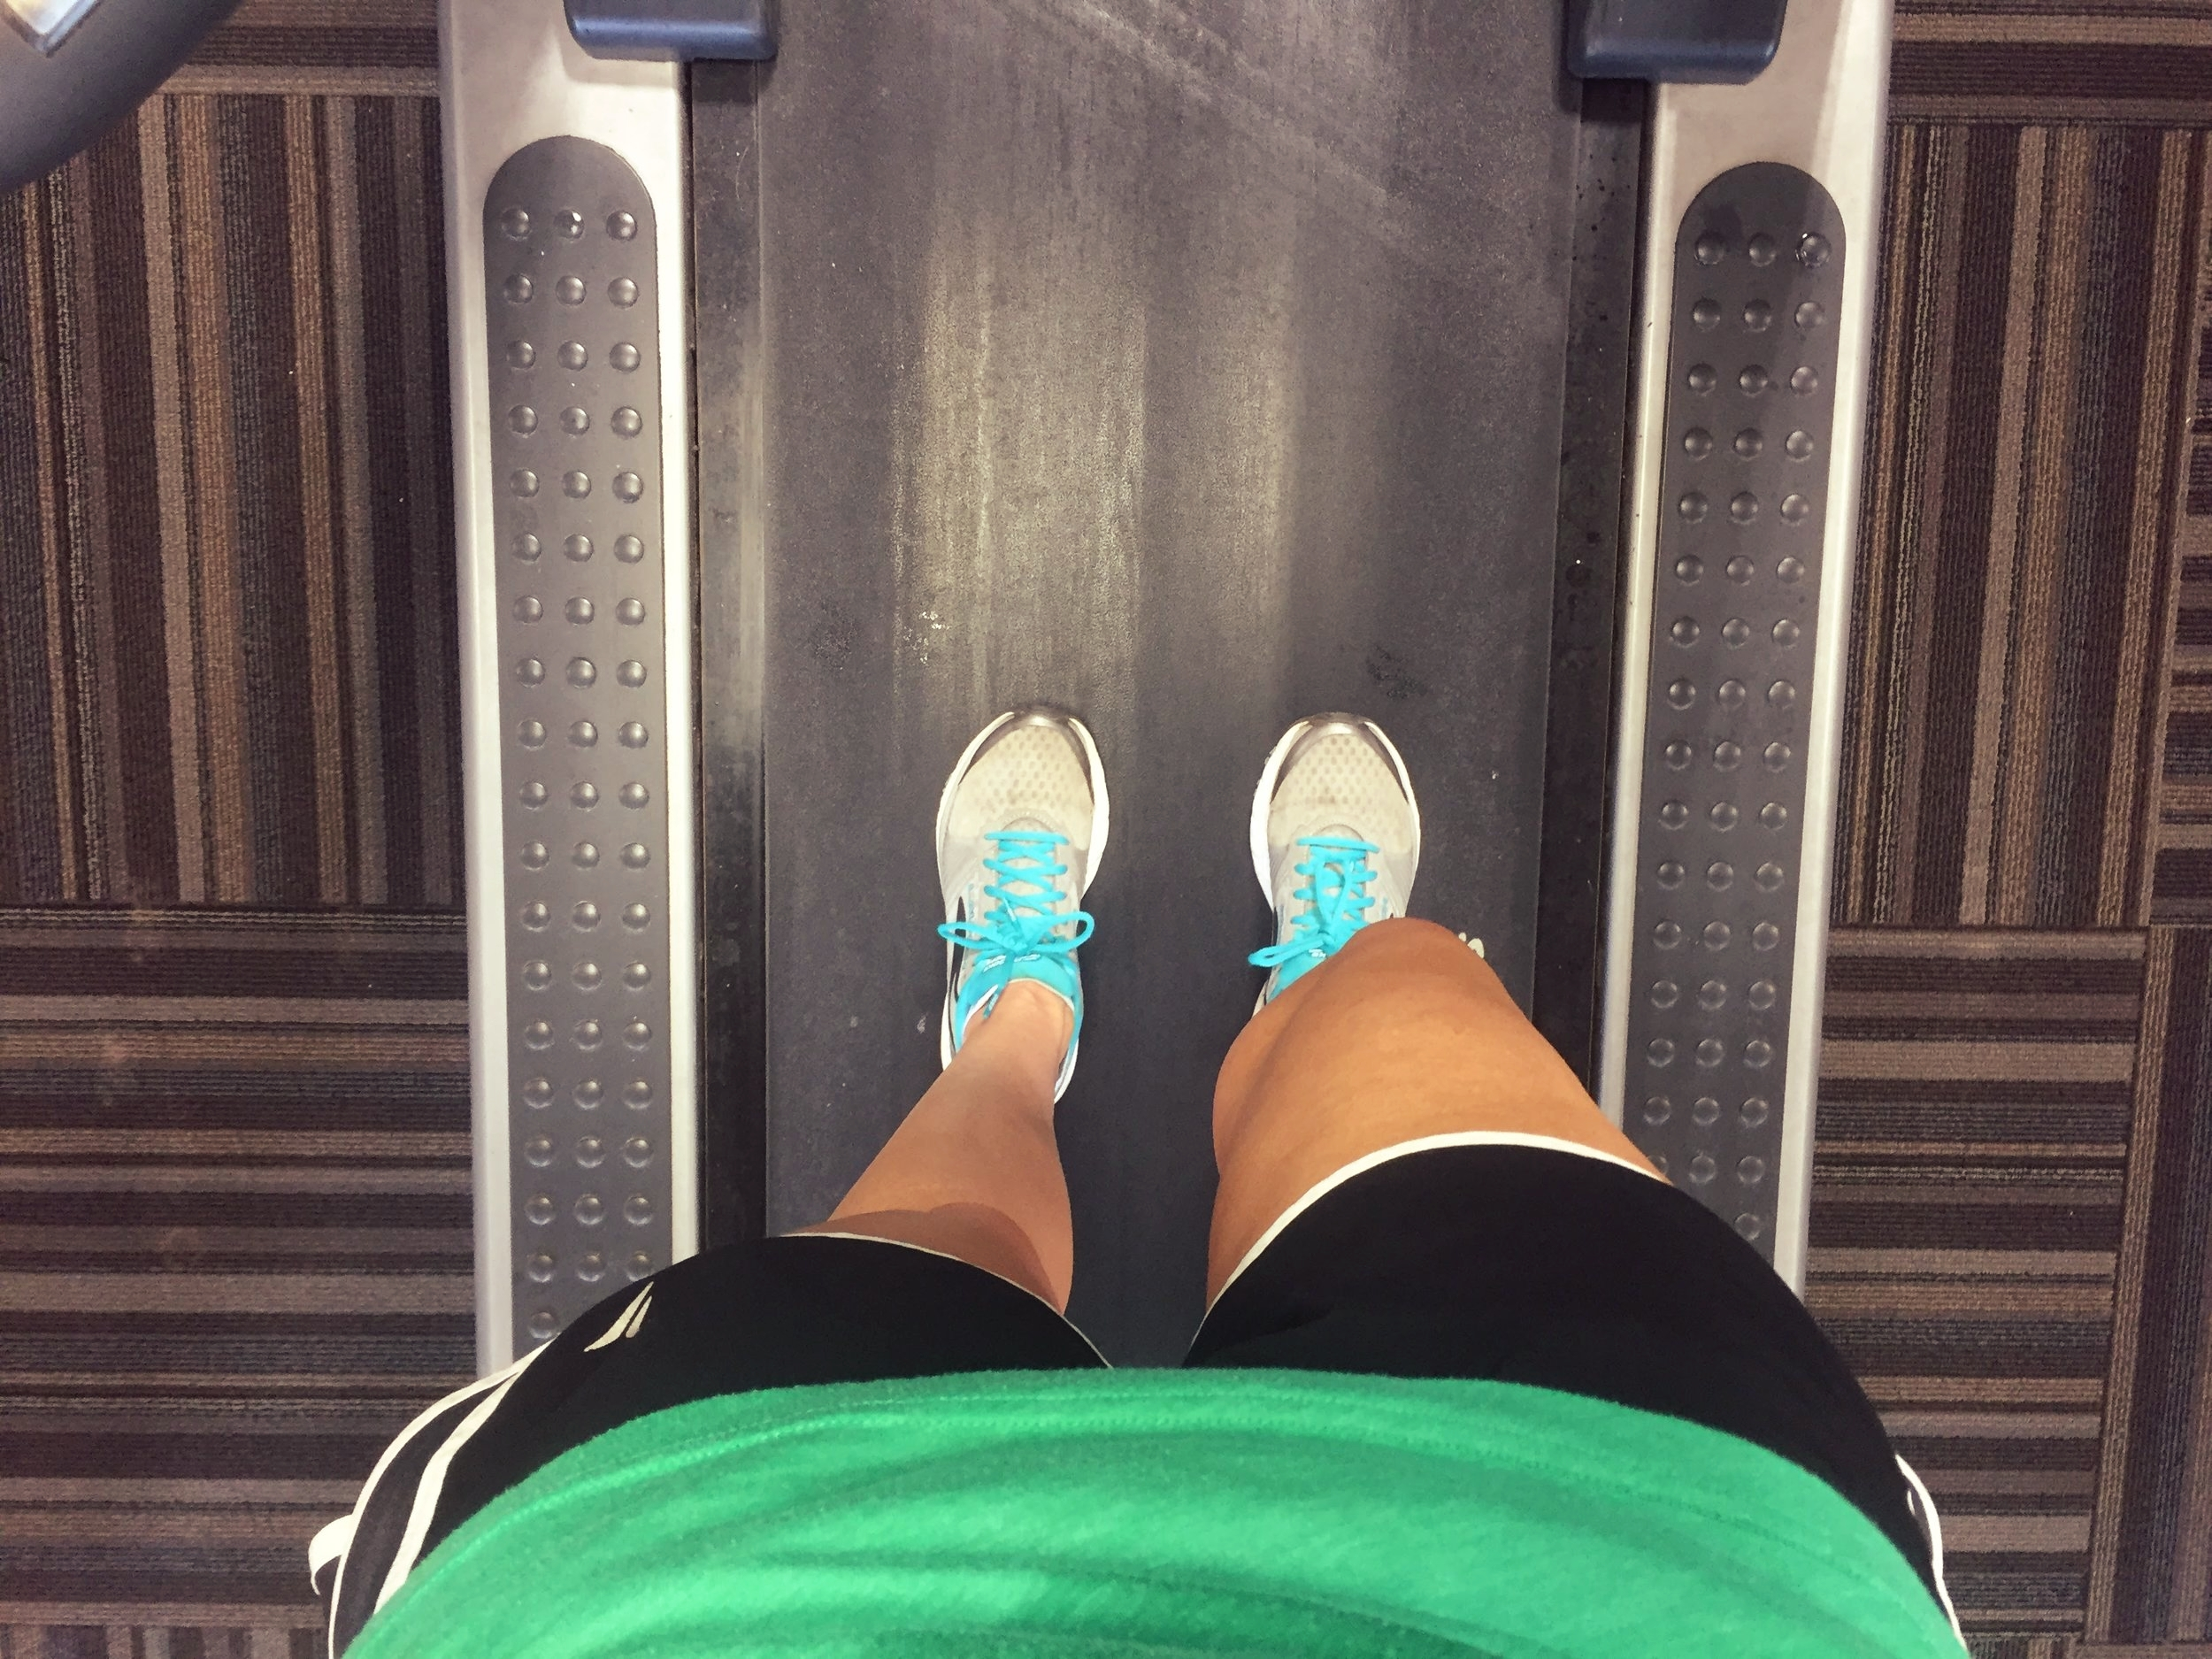 Treadmilling at the gym